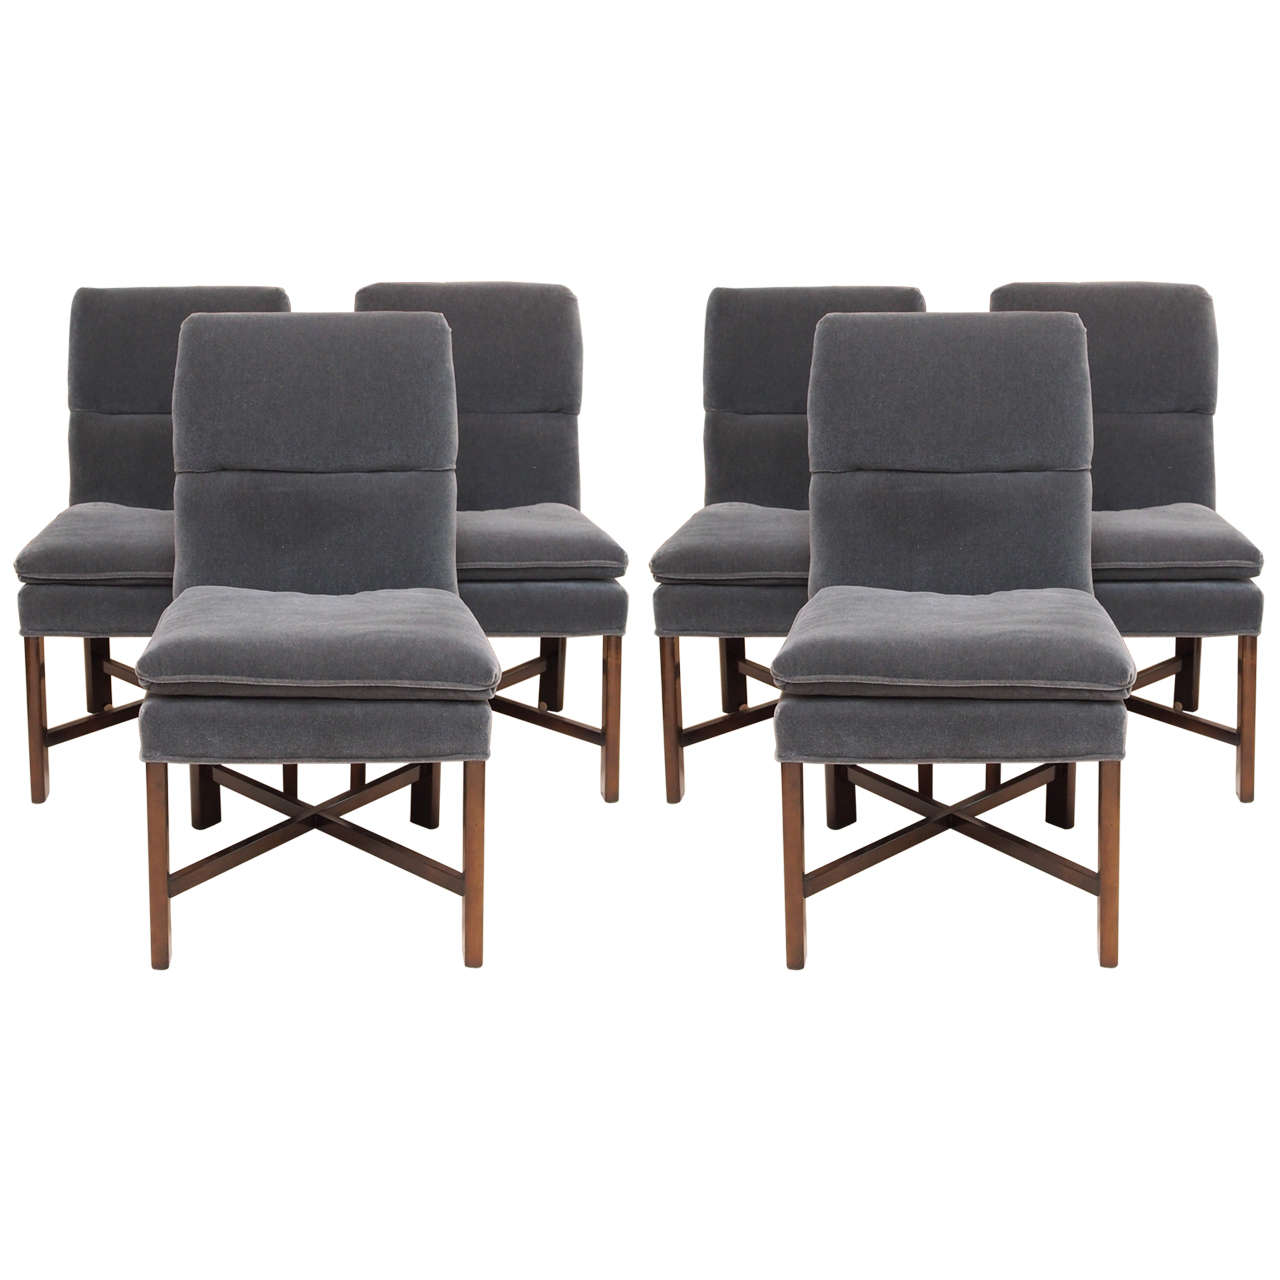 Six vintage baker dining chairs with velvet upholstery at